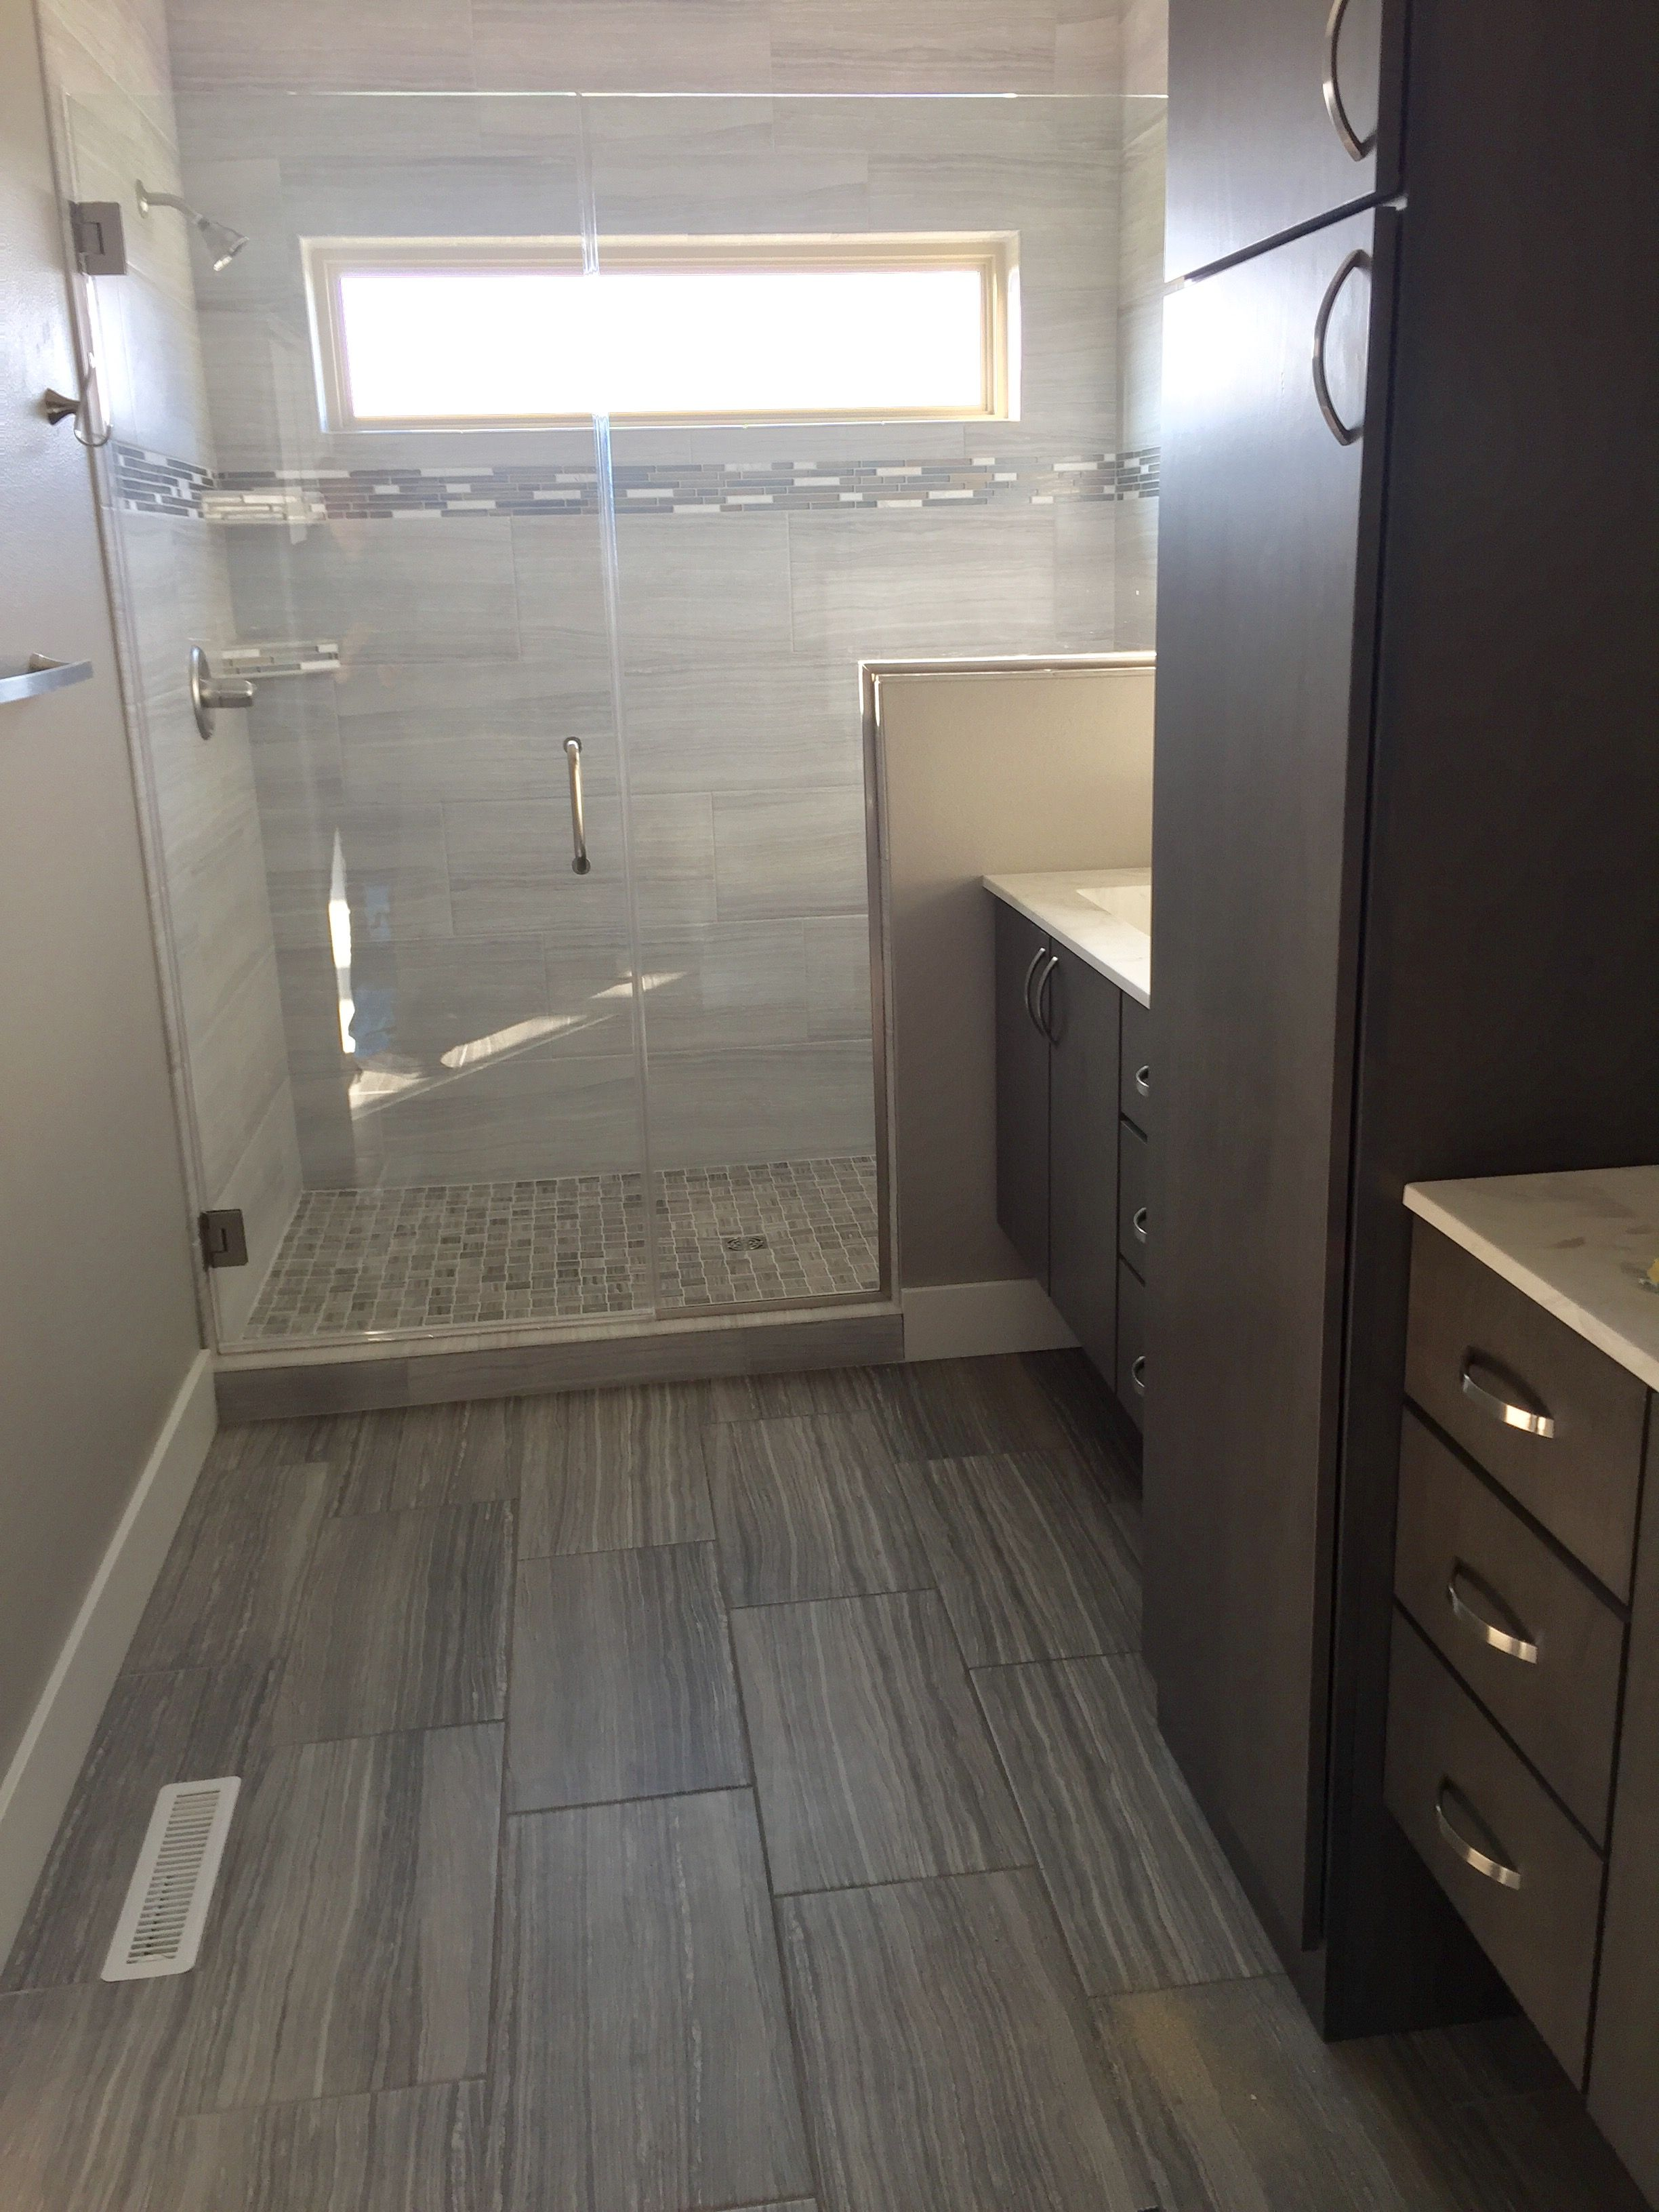 Dark gray 12x24 floor tile transitioning into a light